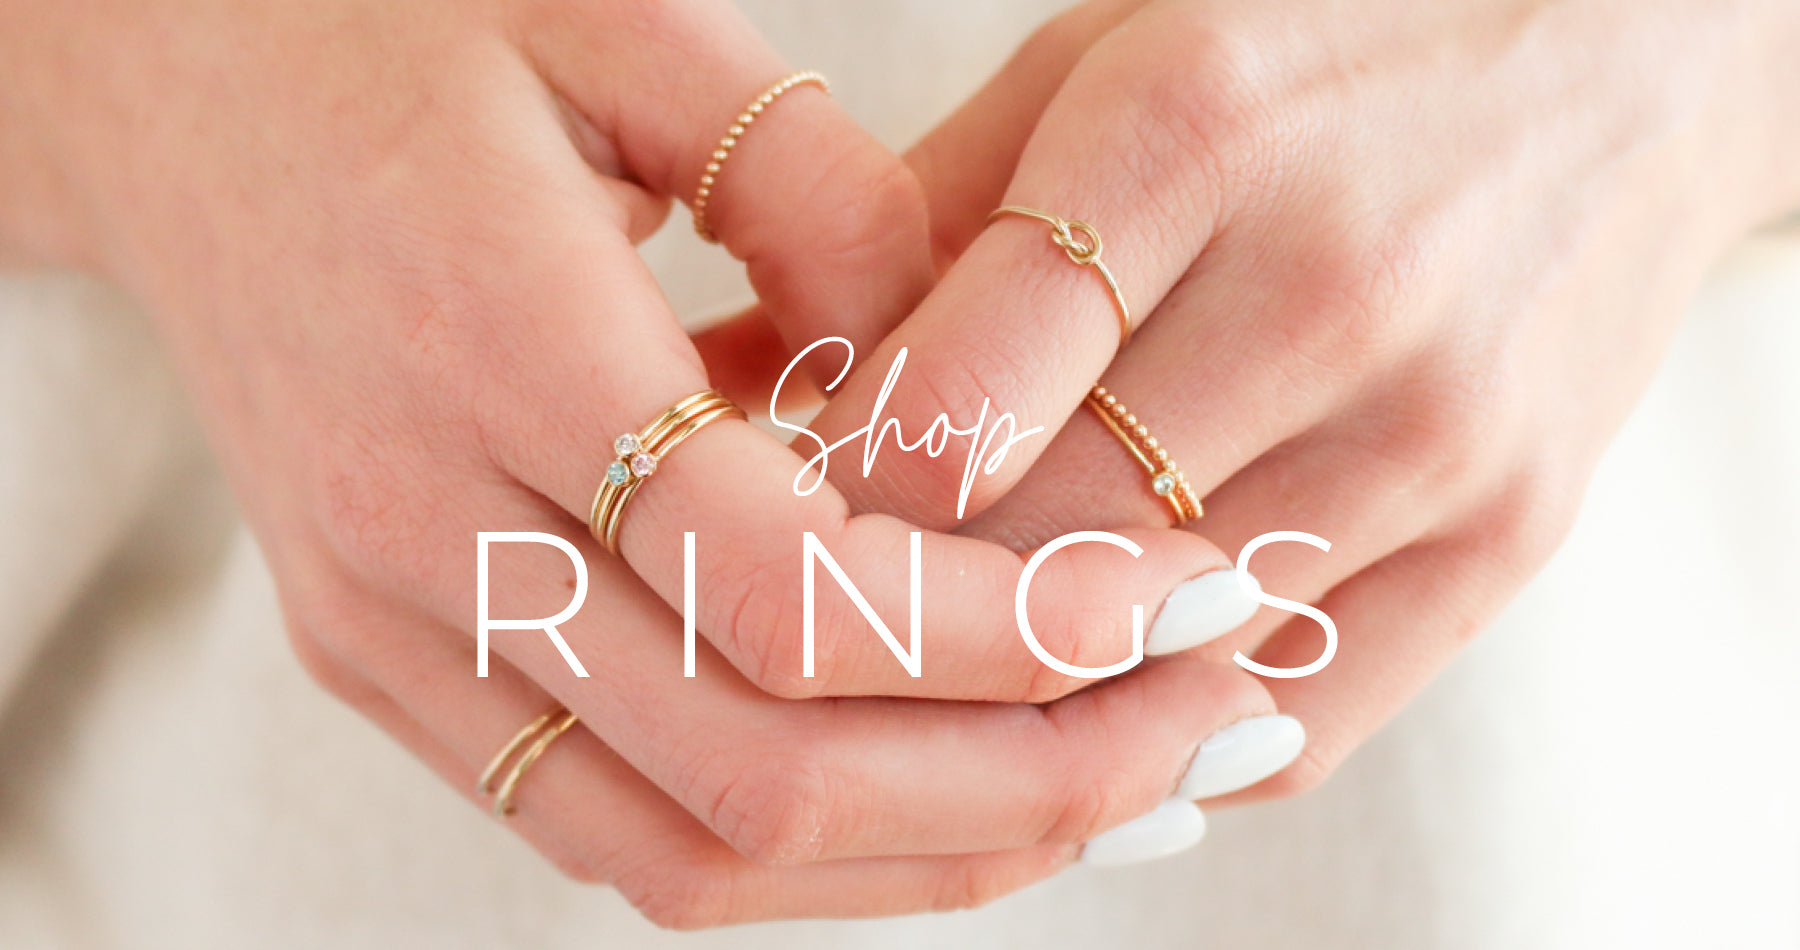 Shop Kellective by Nikki Rings